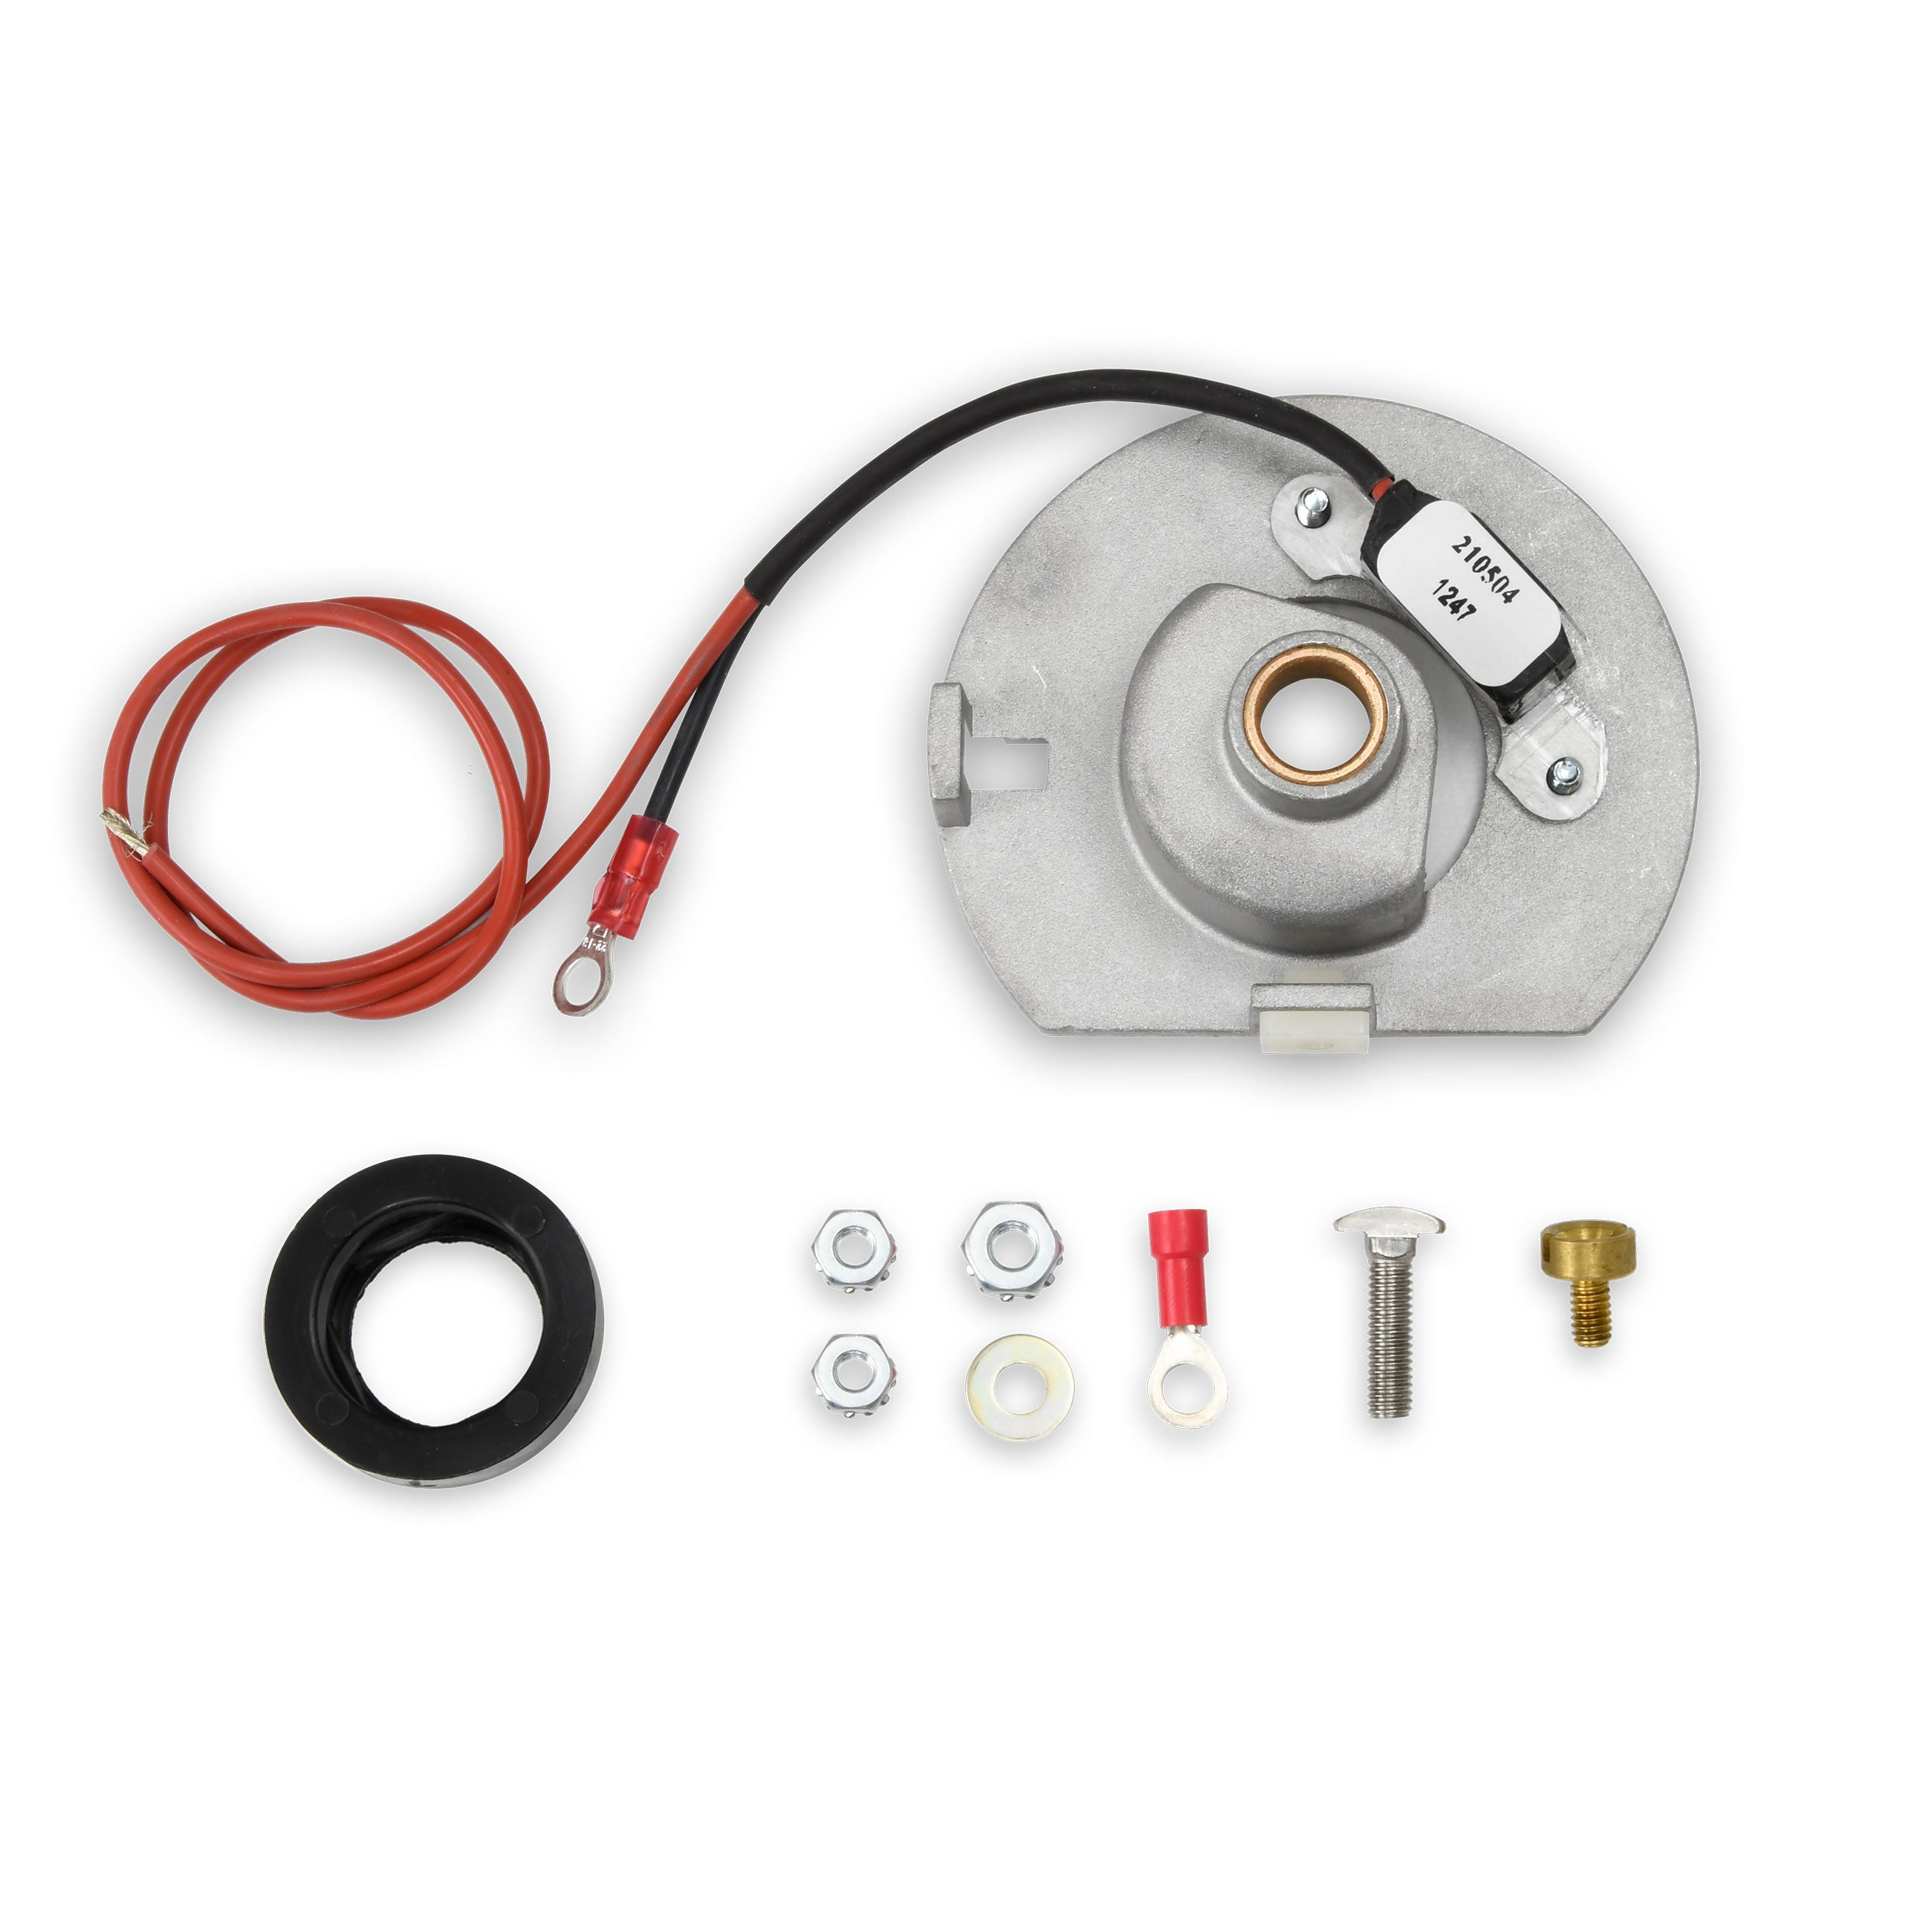 PerTronix 1247 Ignitor Ford 4 cyl